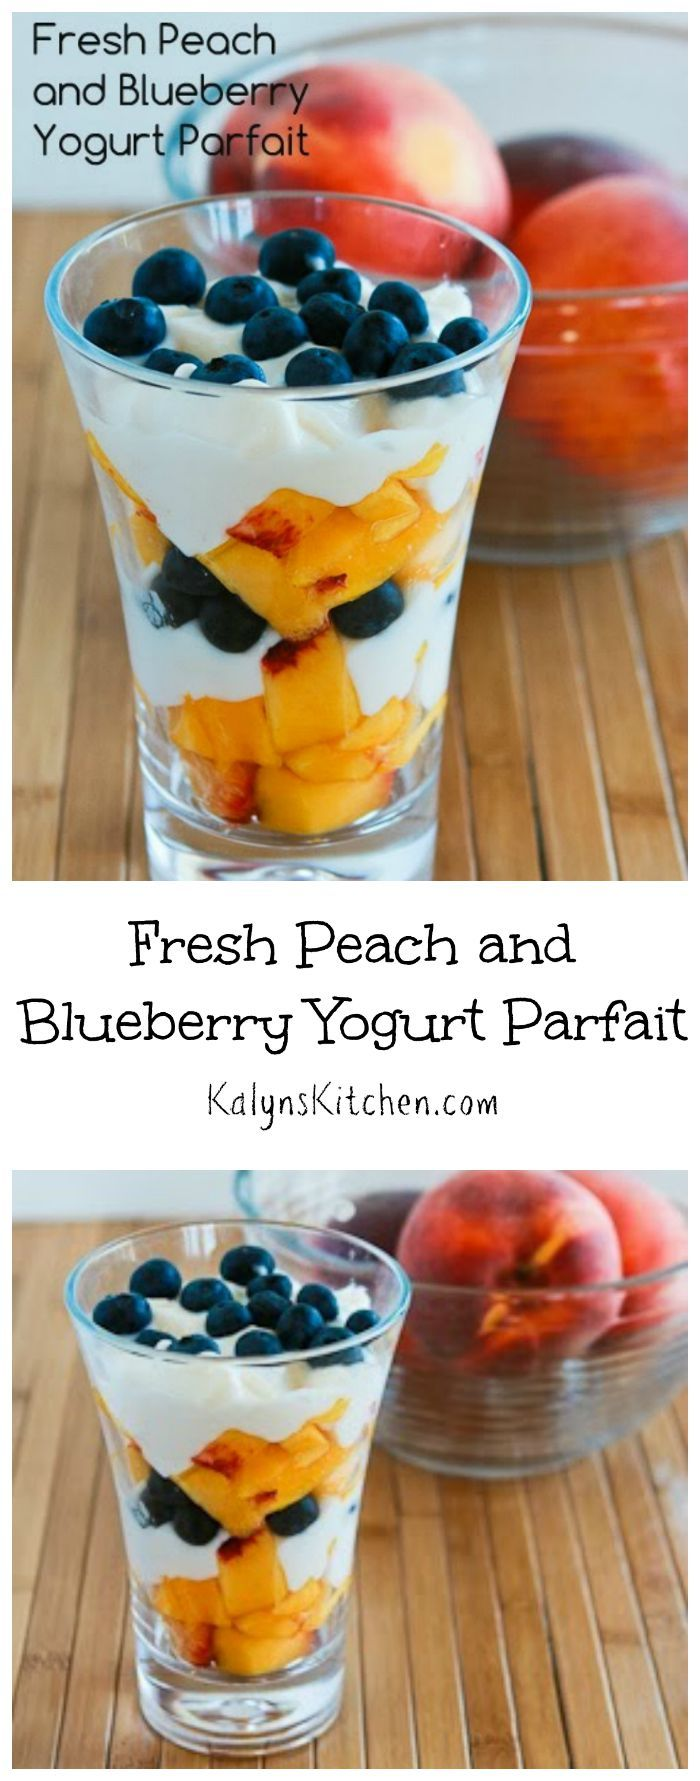 It's fresh peach season and this Fresh Peach and Blueberry Yogurt Parfait is an easy and delicious way to use peaches! The recipe also has ideas for other variations. [from KalynsKitchen.com]